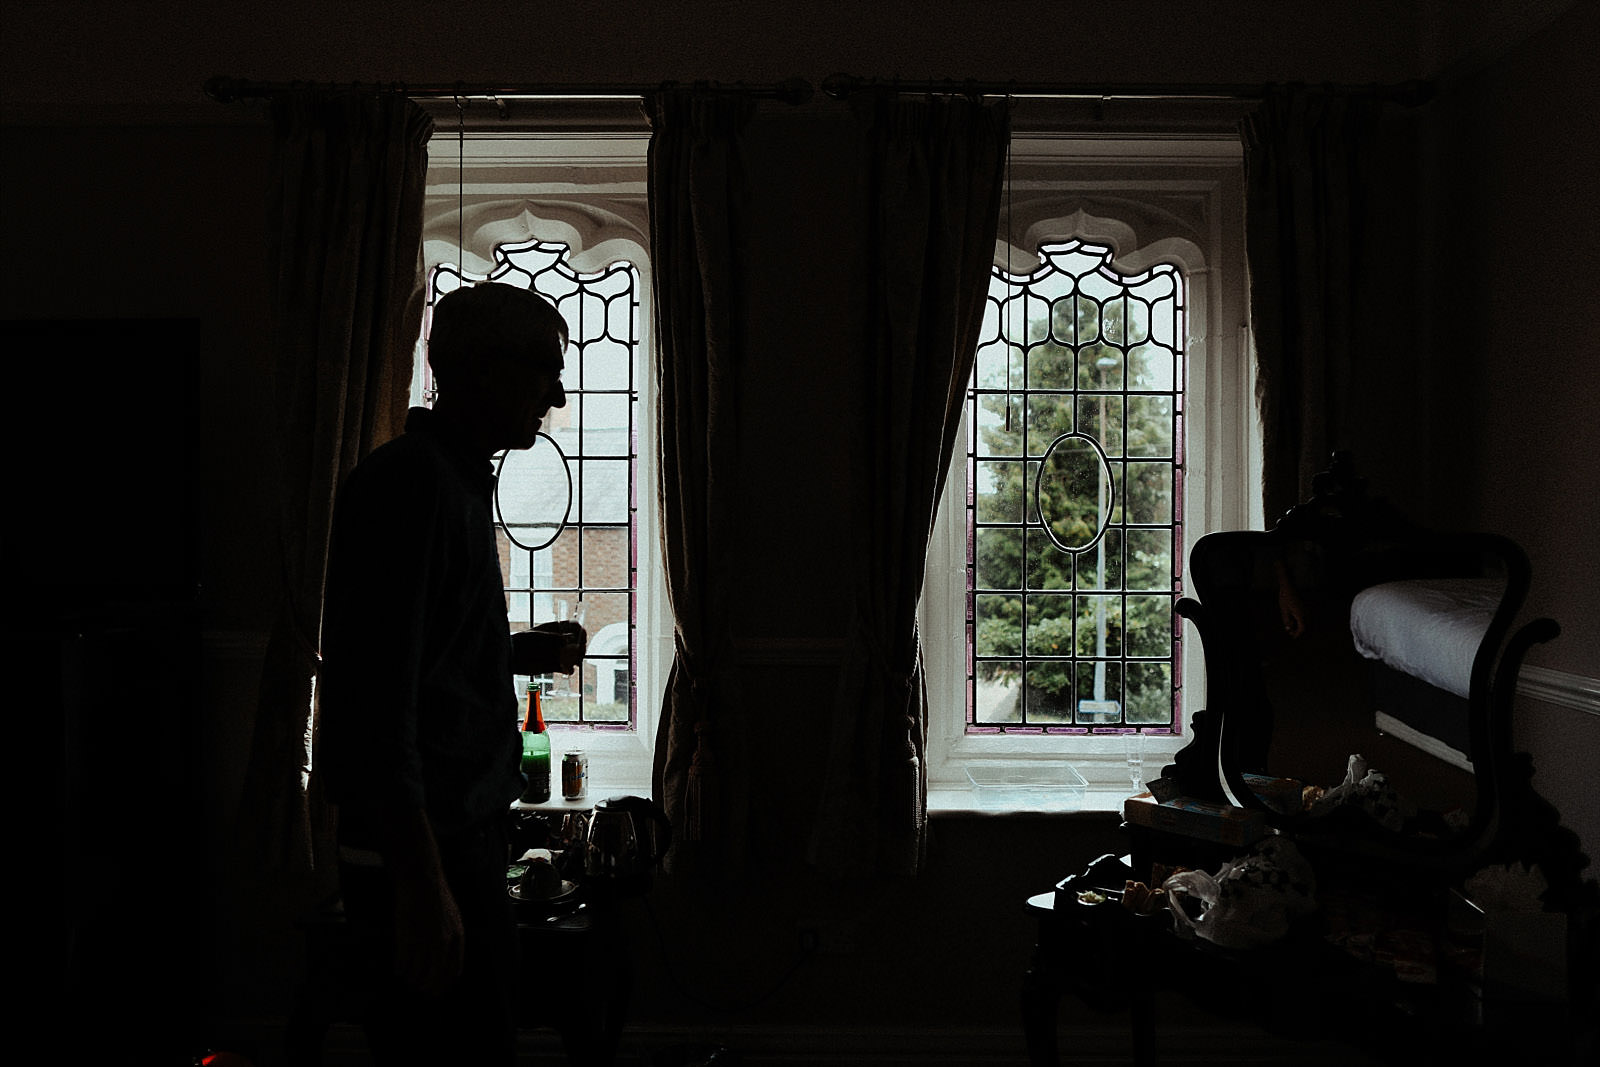 silhouetted dad by a window